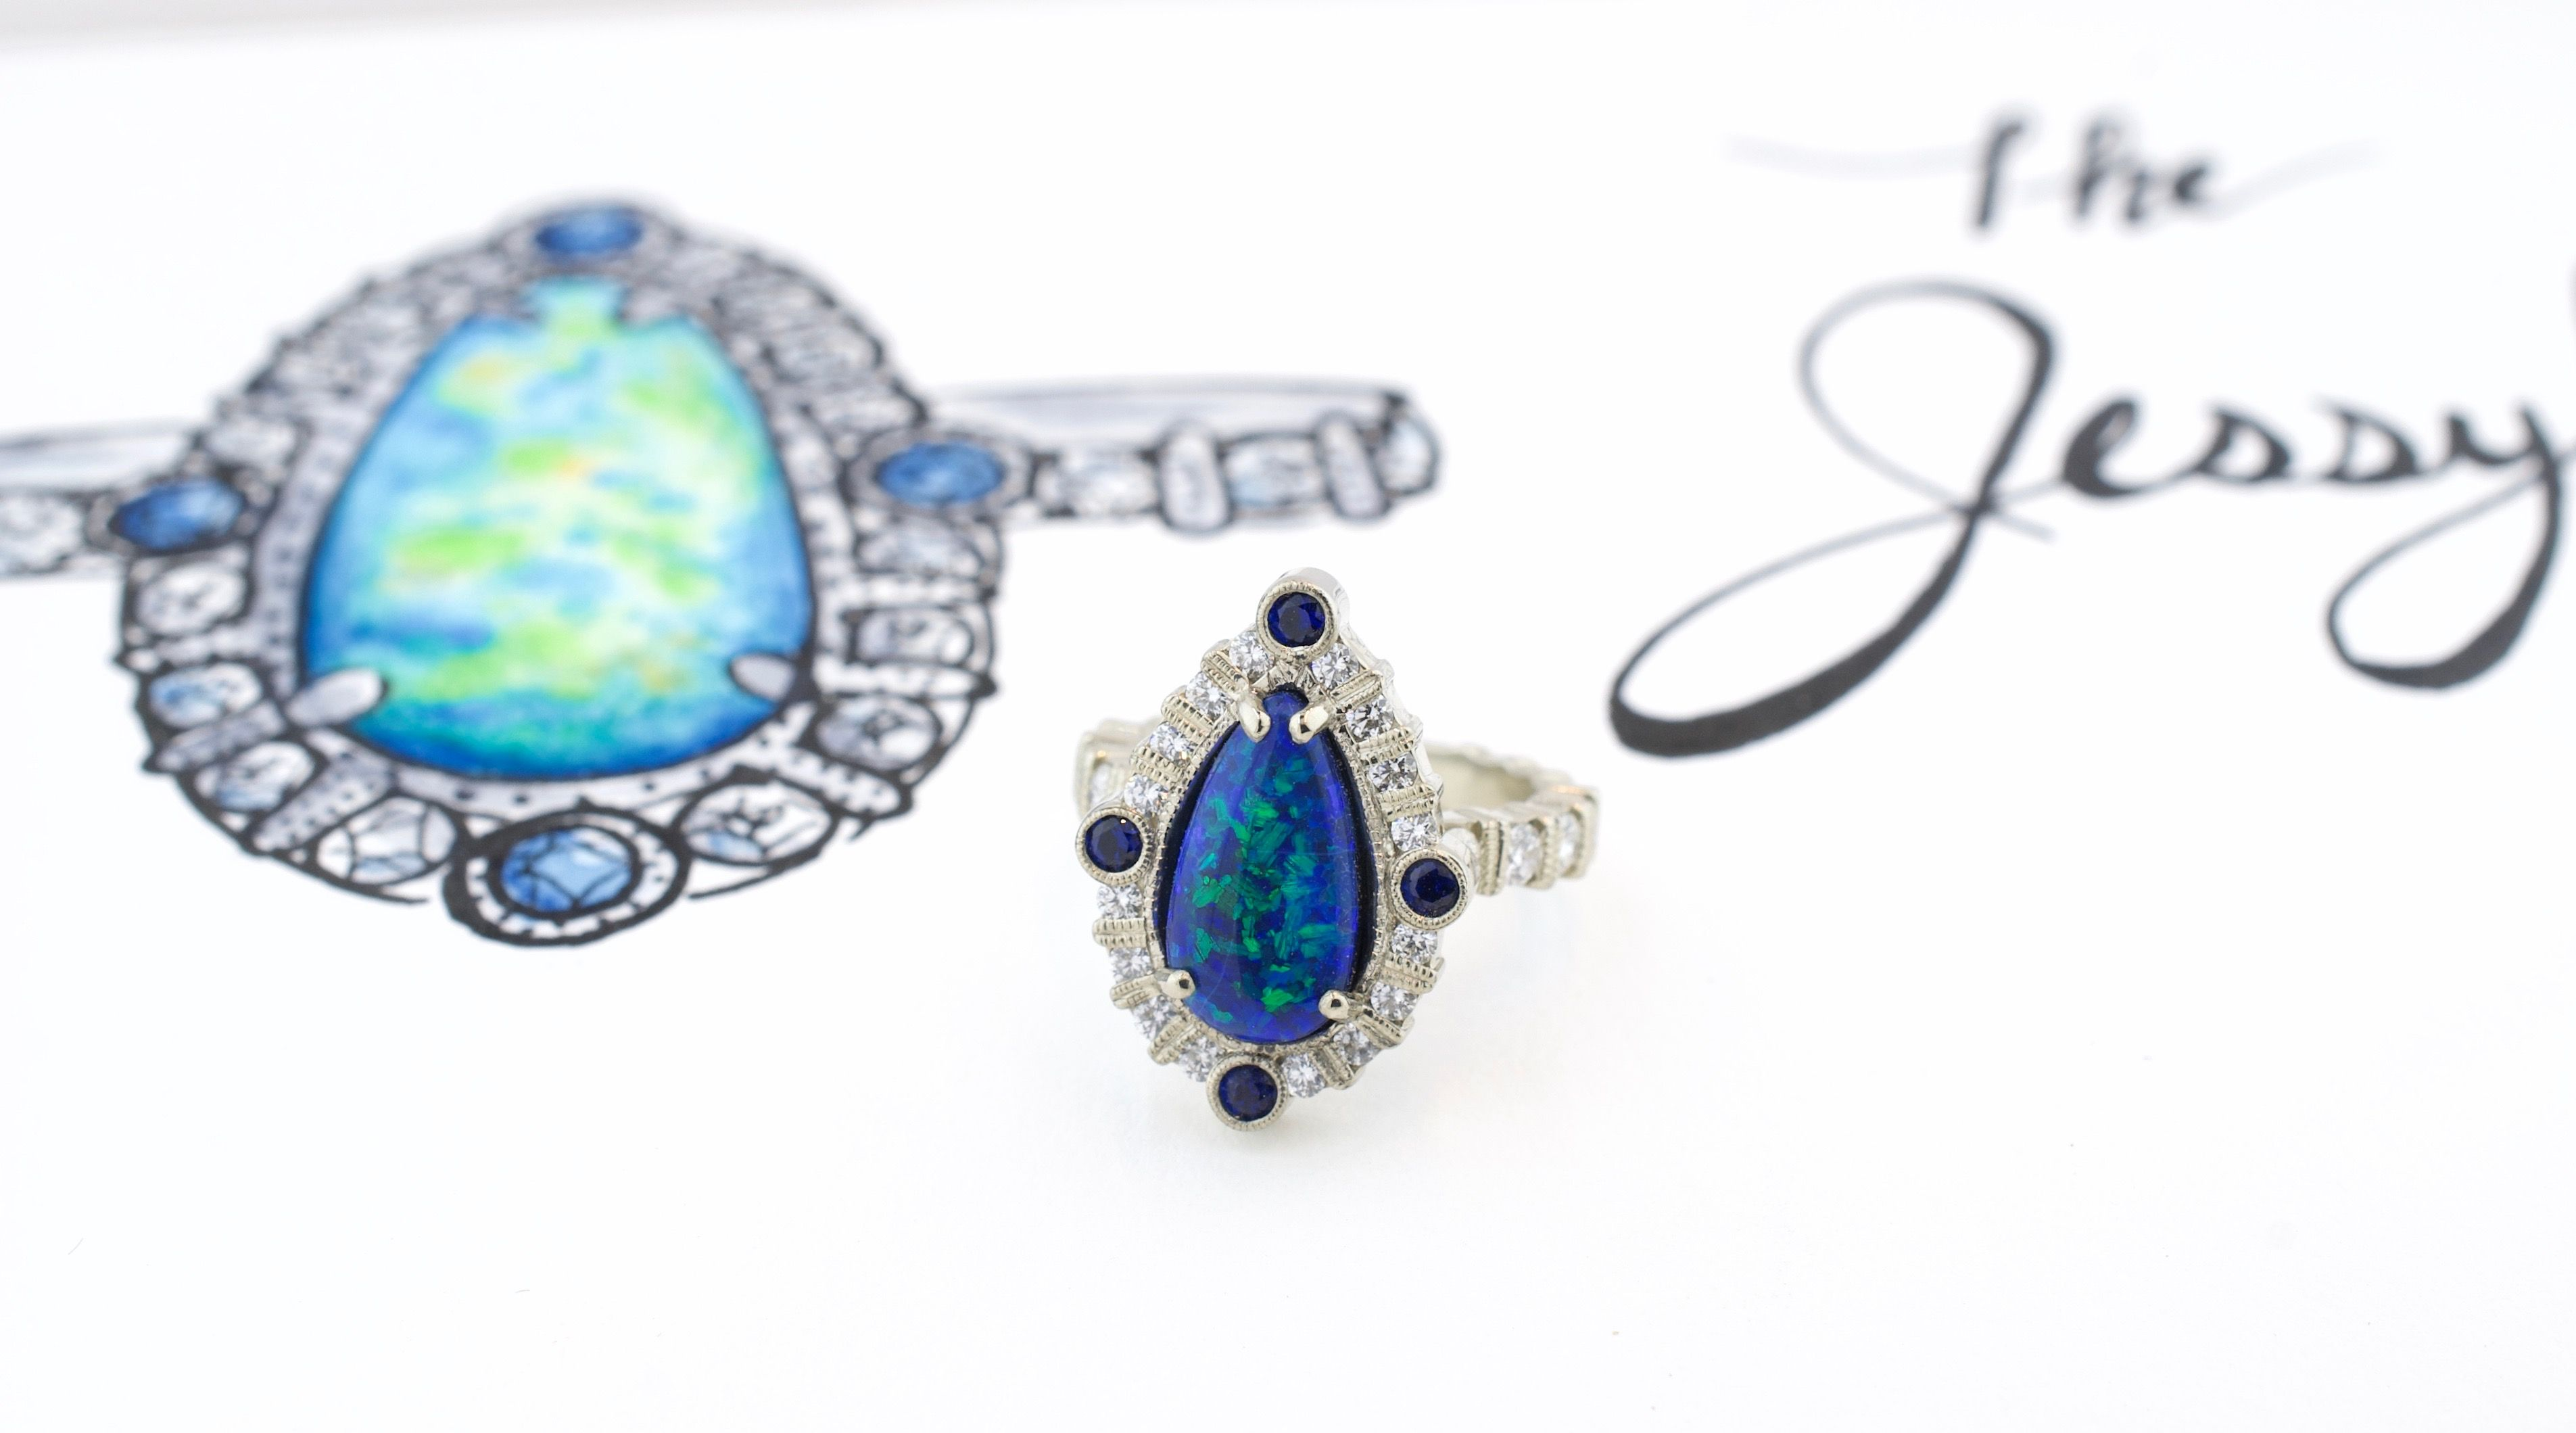 Black Opal Engagement Ring Engagement Rings Engagement